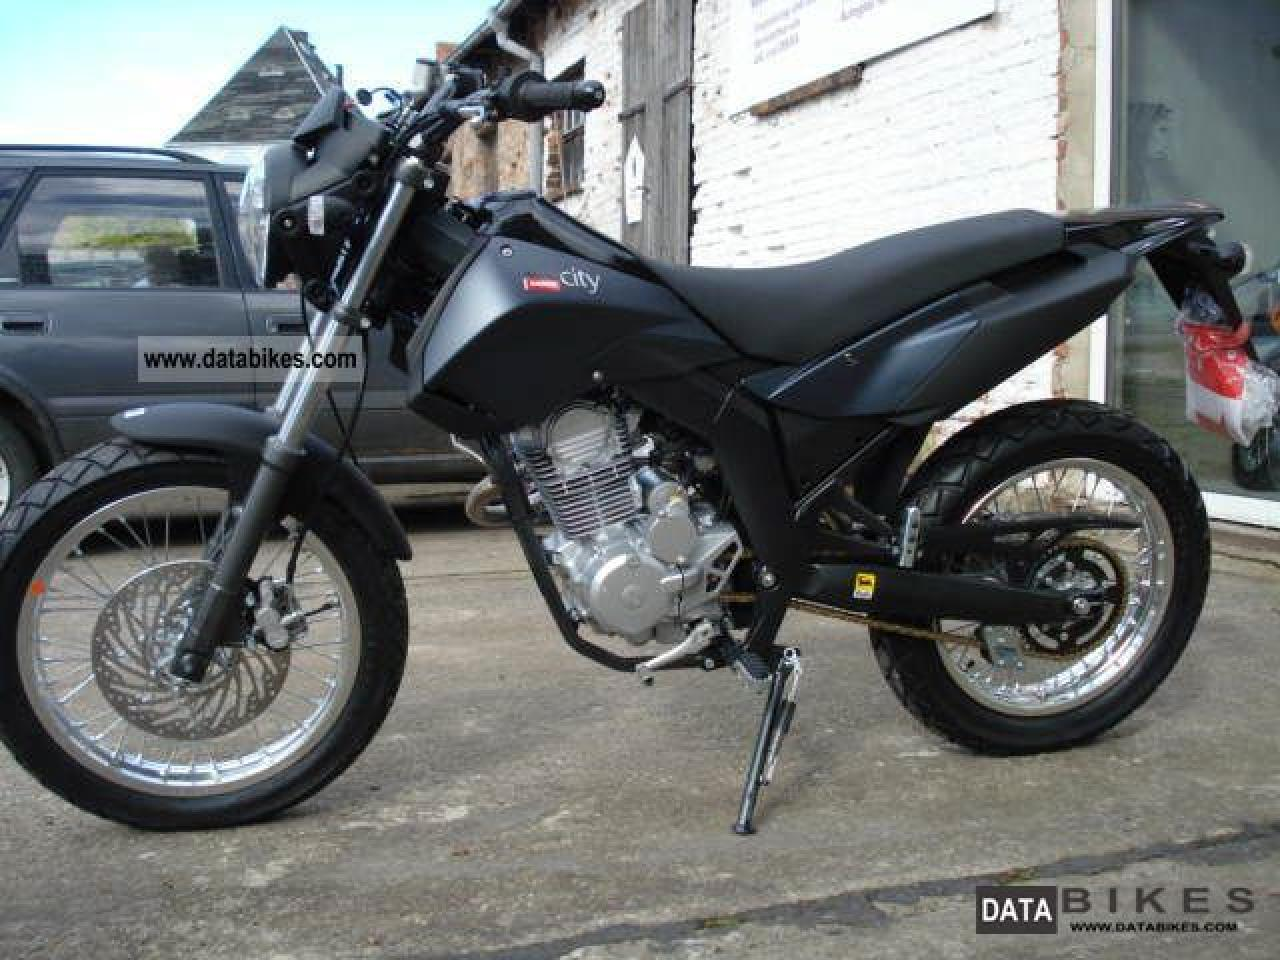 2007 Derbi Cross City 50 #4